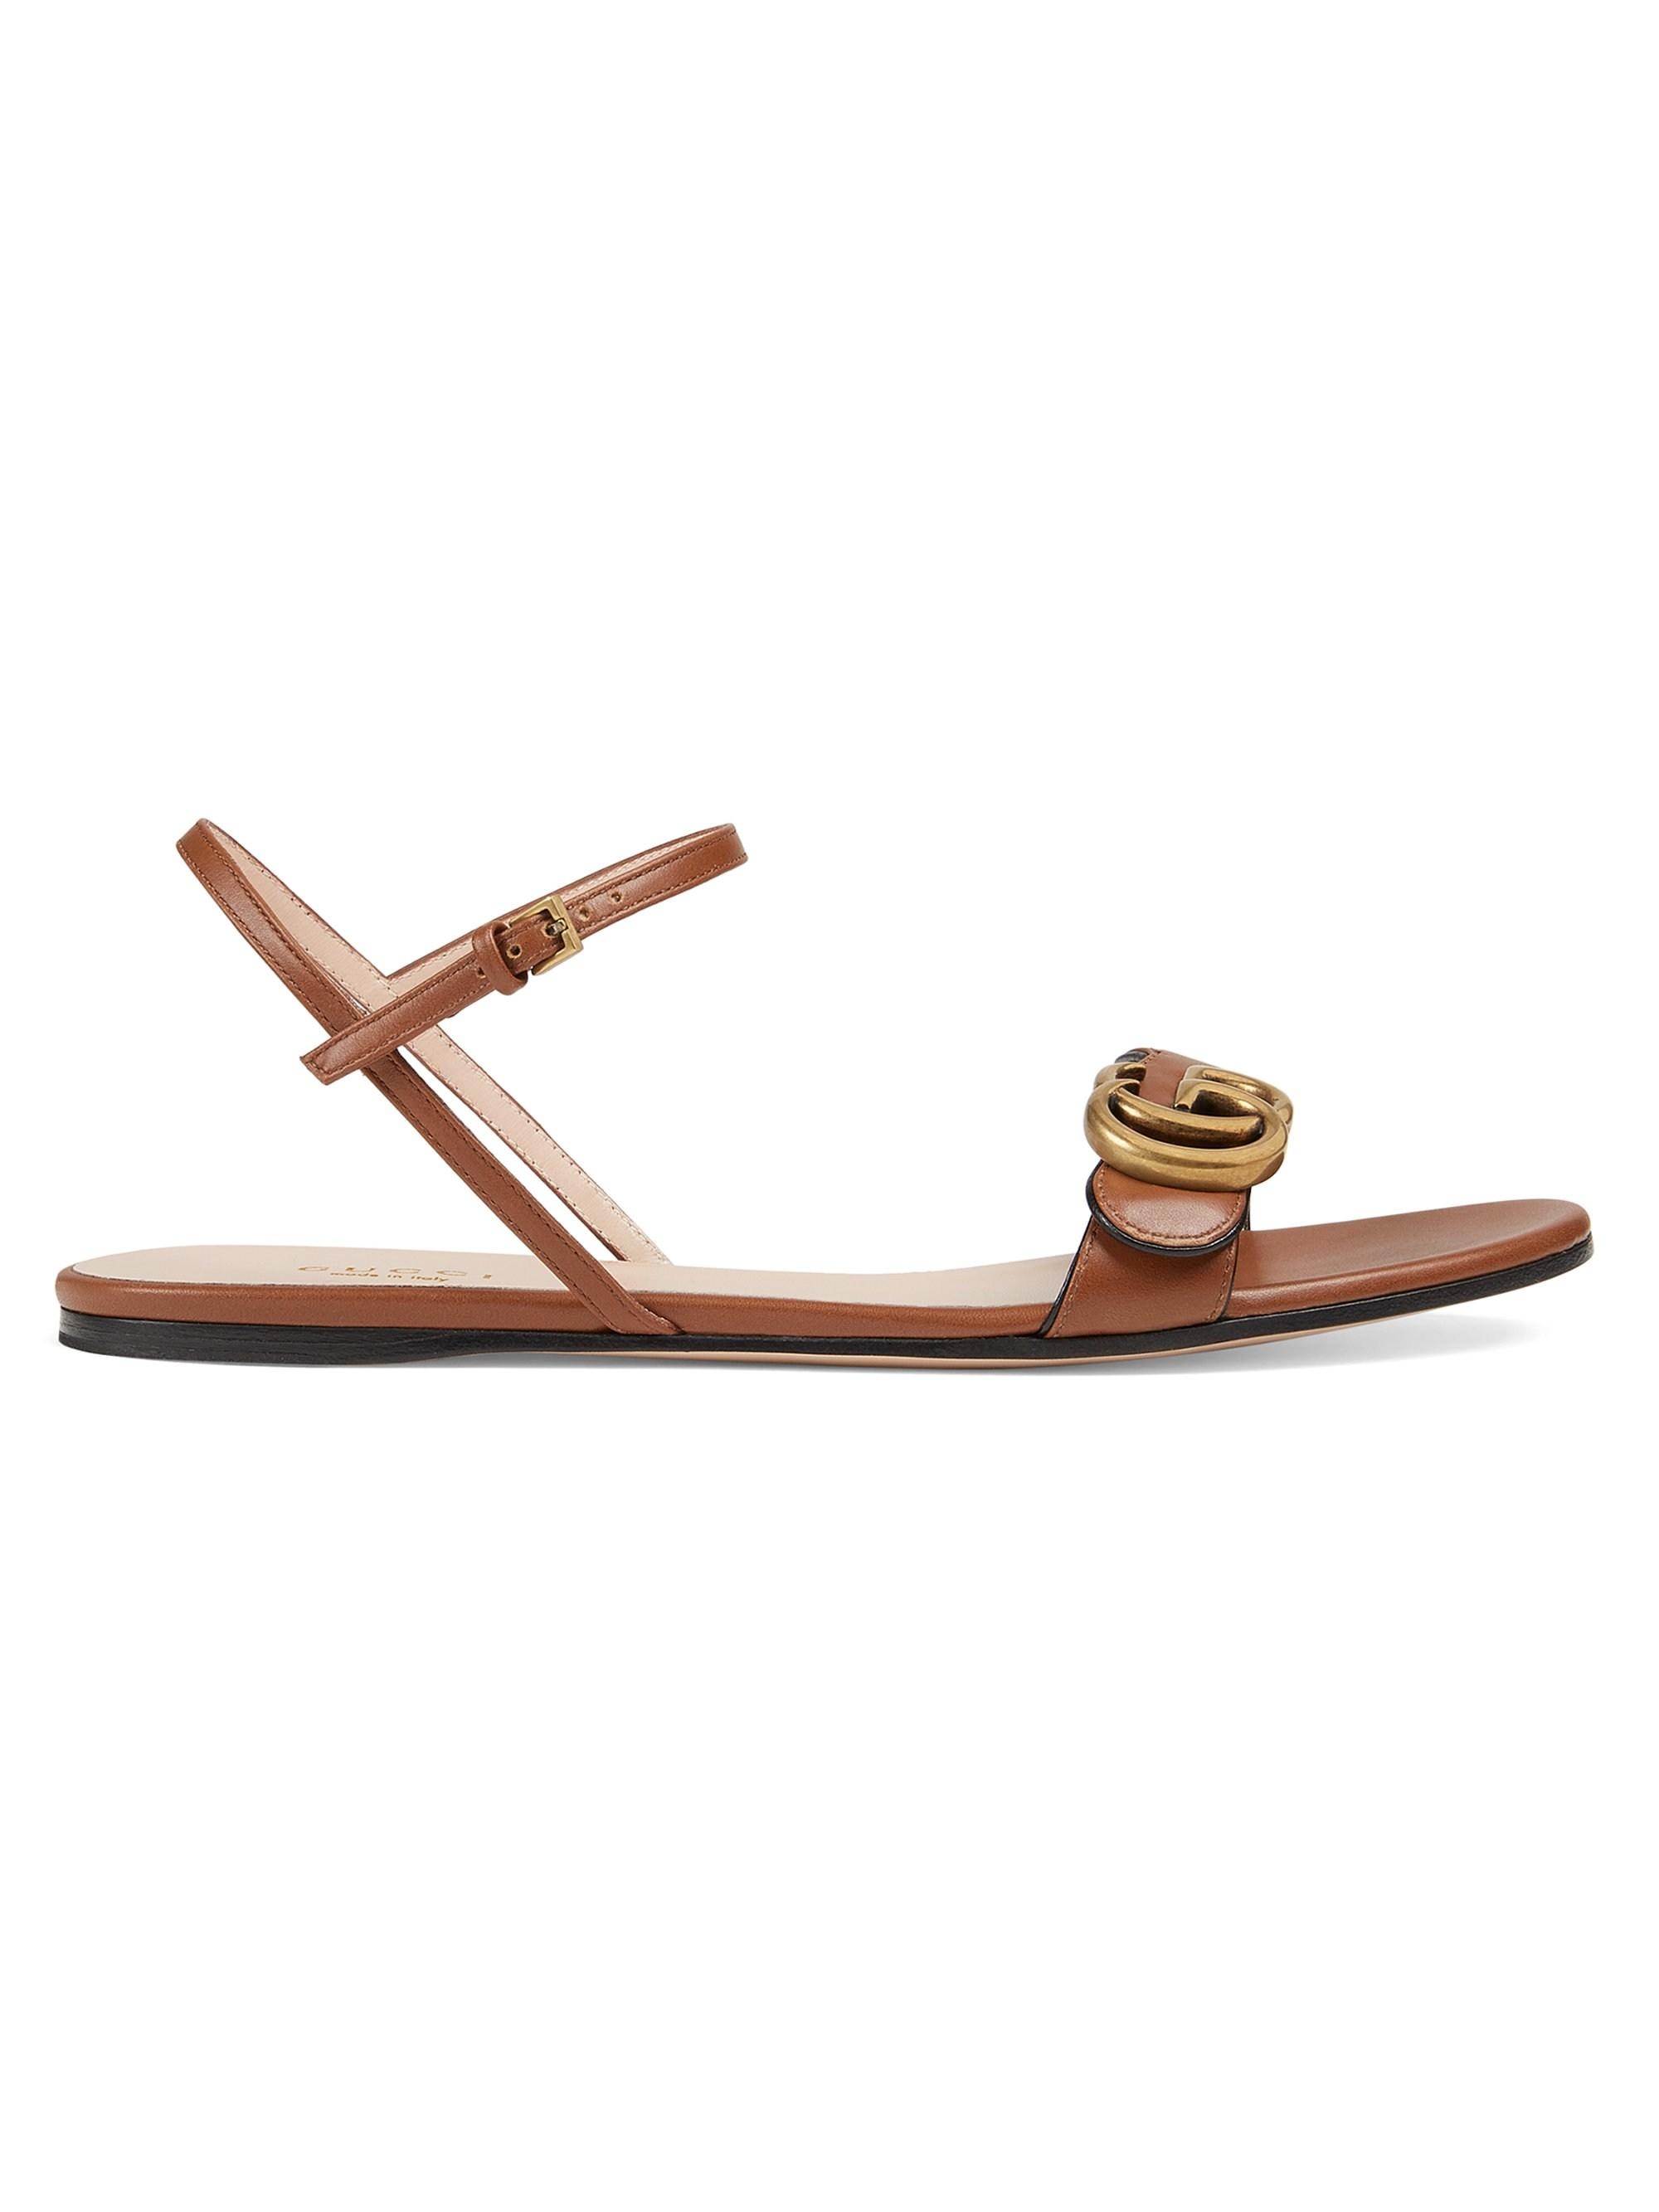 e067266eb1978f Lyst - Gucci Marmont Leather Double G Sandals in Brown